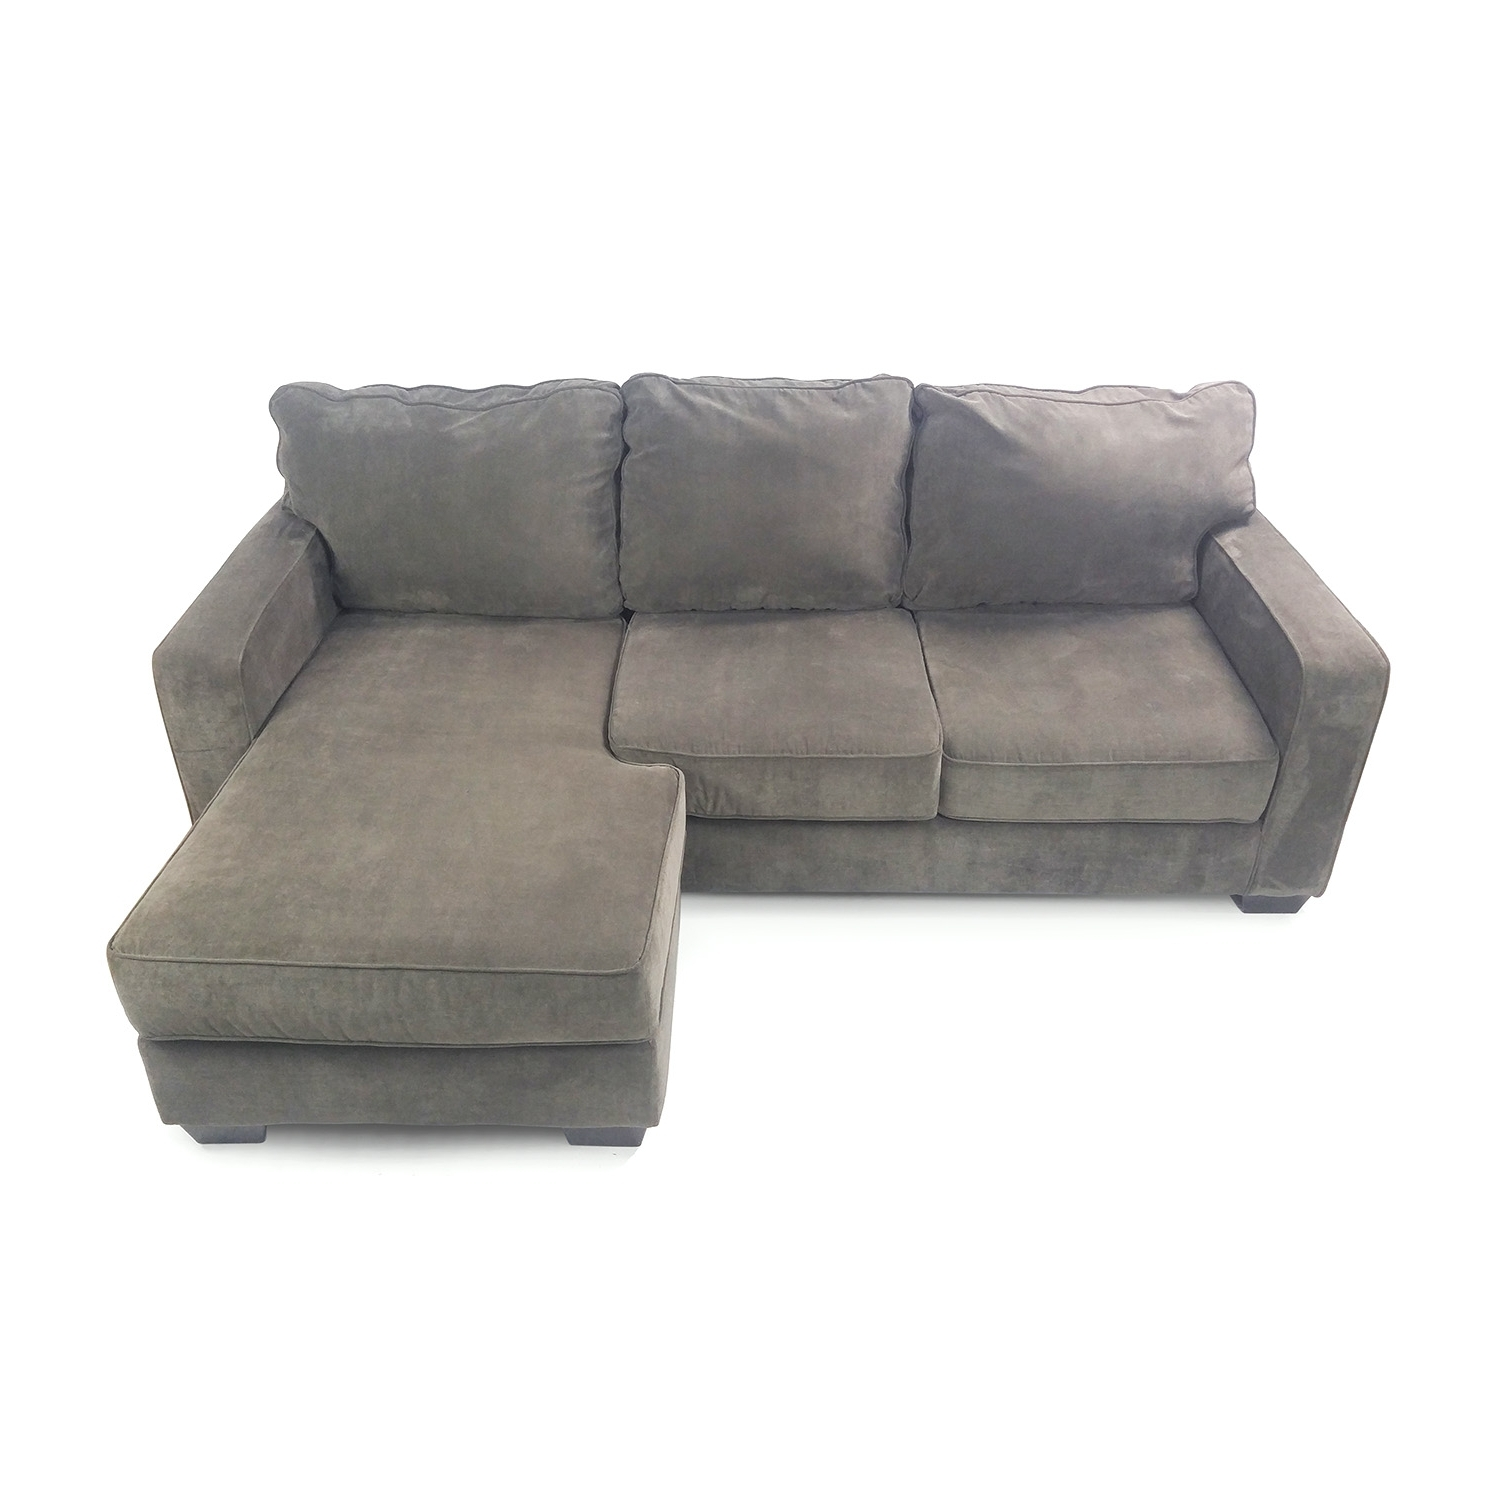 [%50% Off – Ashley Furniture Hodan Sofa Chaise / Sofas Intended For Widely Used Hodan Sofas With Chaise|Hodan Sofas With Chaise Intended For Current 50% Off – Ashley Furniture Hodan Sofa Chaise / Sofas|Trendy Hodan Sofas With Chaise For 50% Off – Ashley Furniture Hodan Sofa Chaise / Sofas|Most Up To Date 50% Off – Ashley Furniture Hodan Sofa Chaise / Sofas In Hodan Sofas With Chaise%] (View 12 of 15)